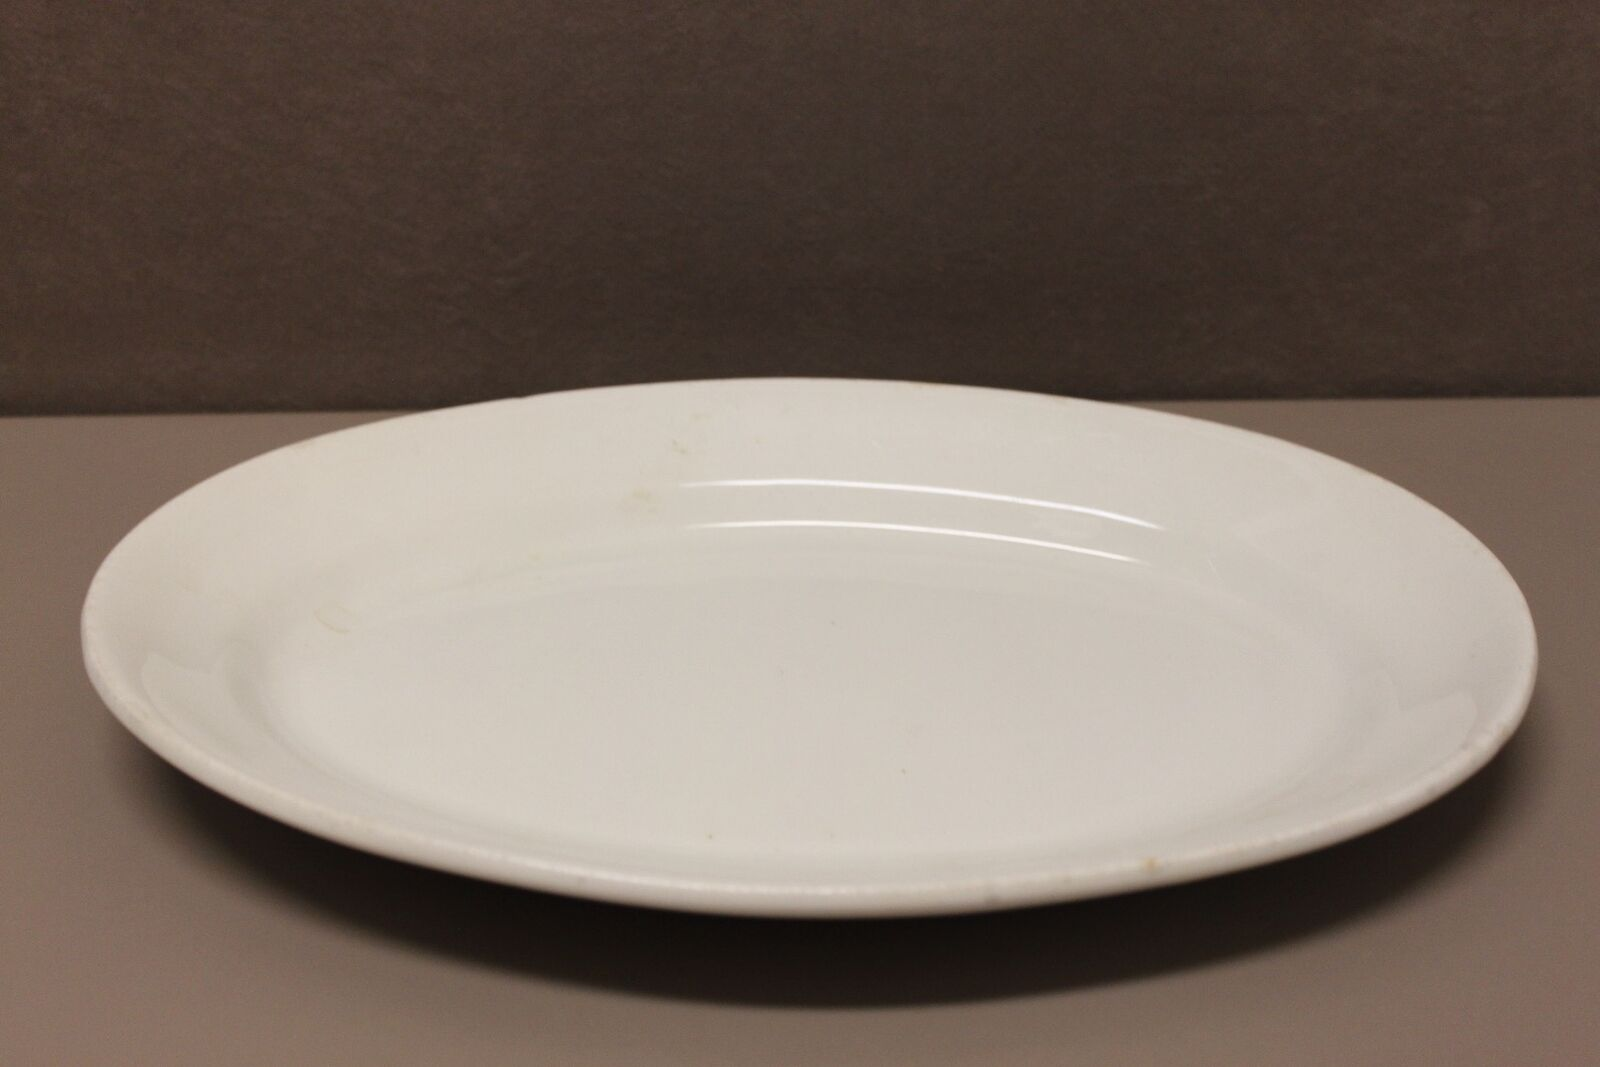 Vintage Creme White Granite Platter, The Wheeling Pottery Co. (New)